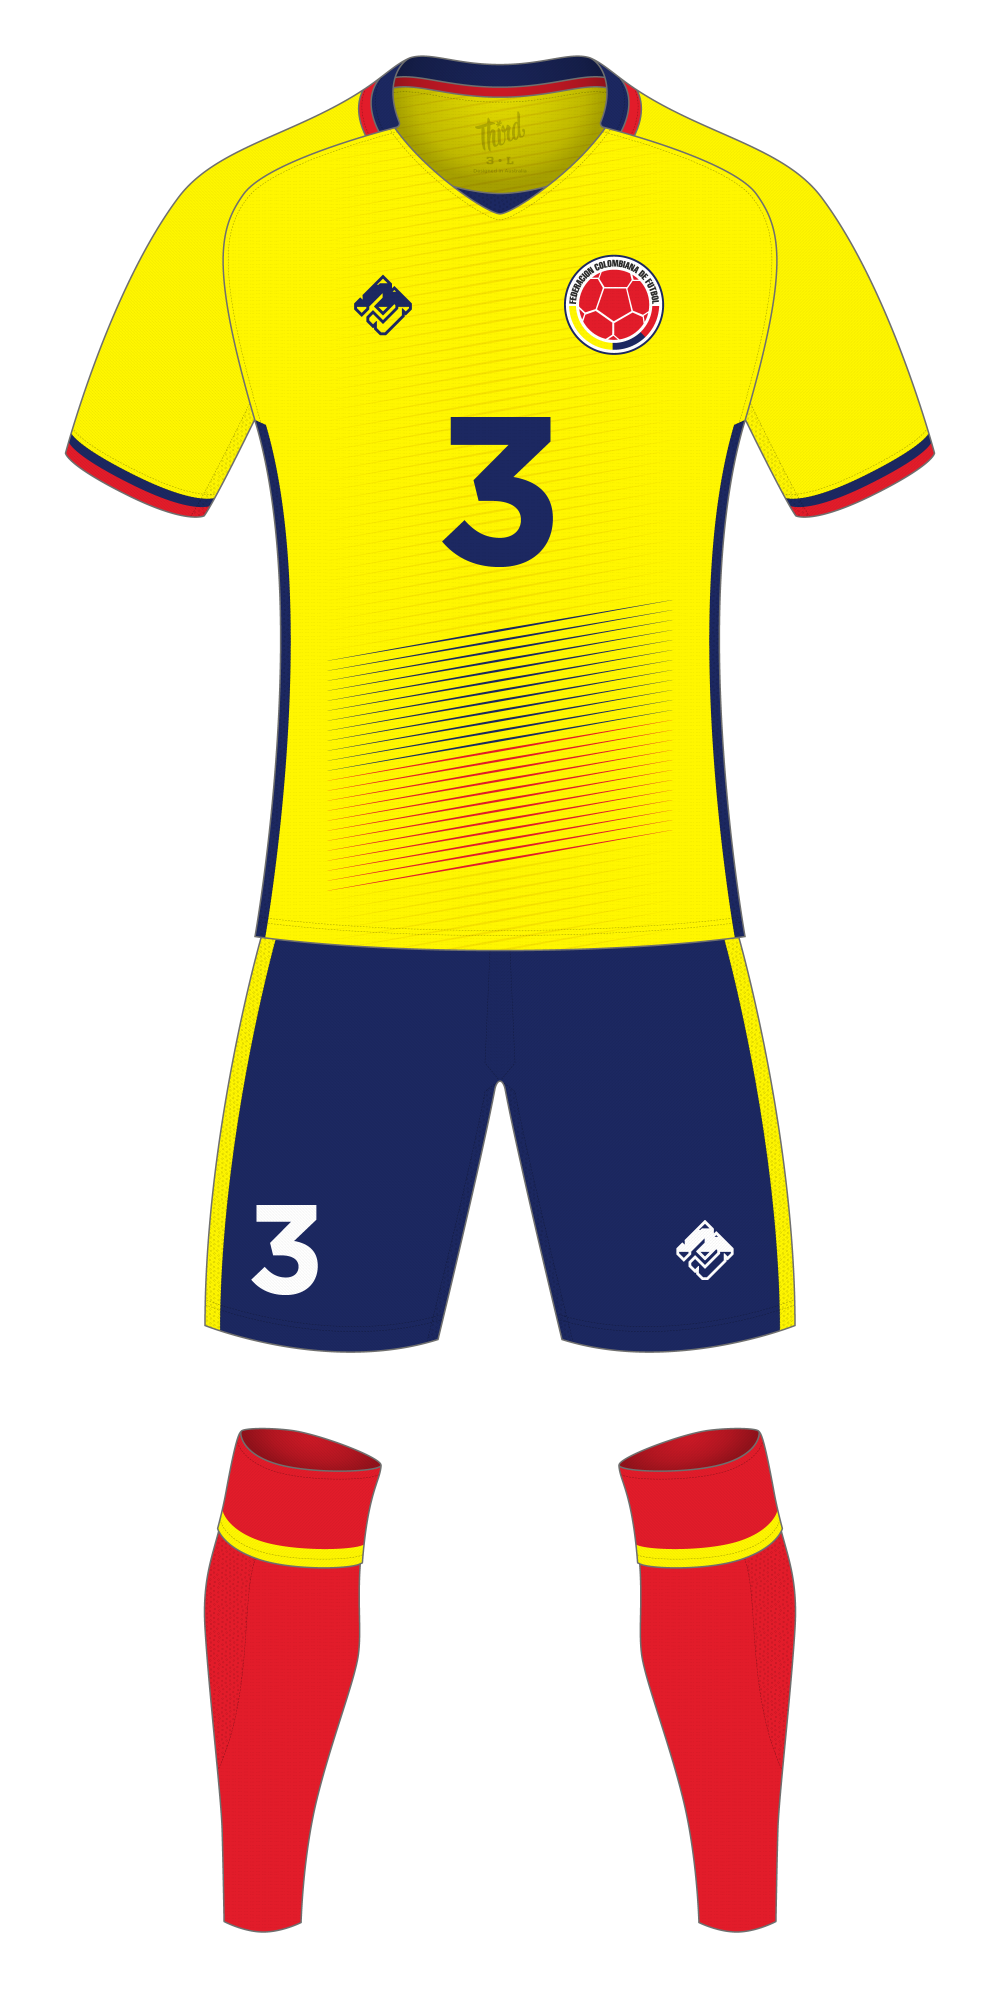 Colombia World Cup 2018 concept